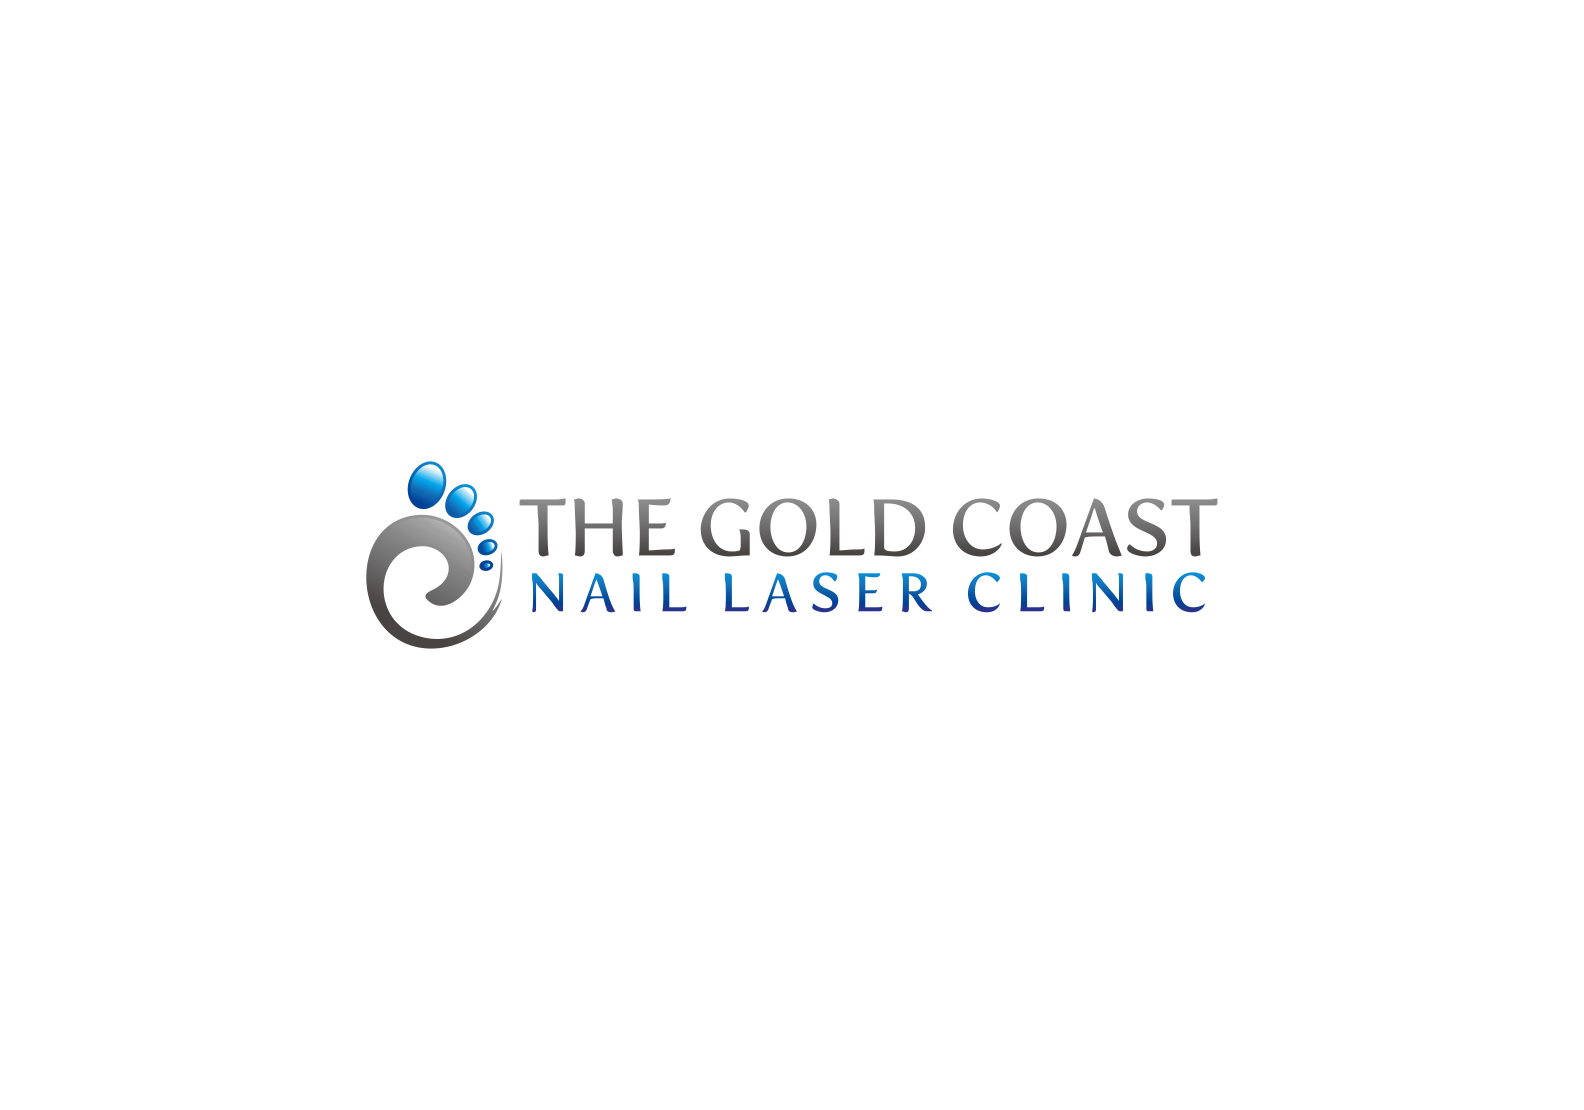 Create a visually inspiring and unique image for The Gold Coast Fungal Laser Clinic